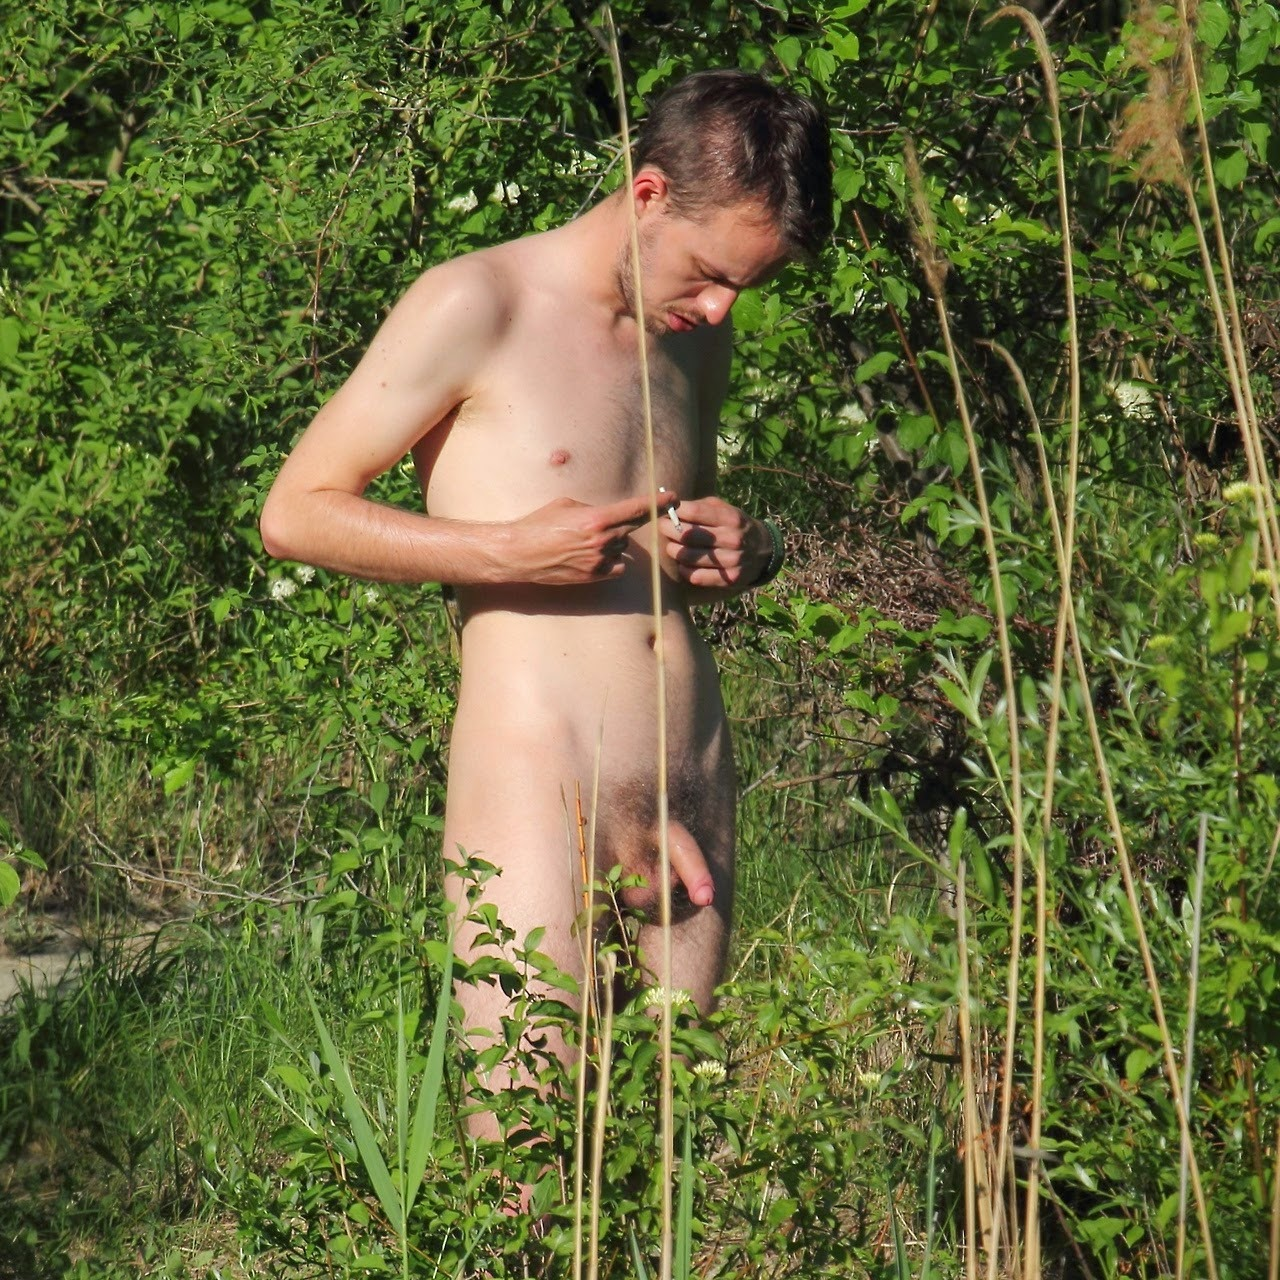 Big cock men naked